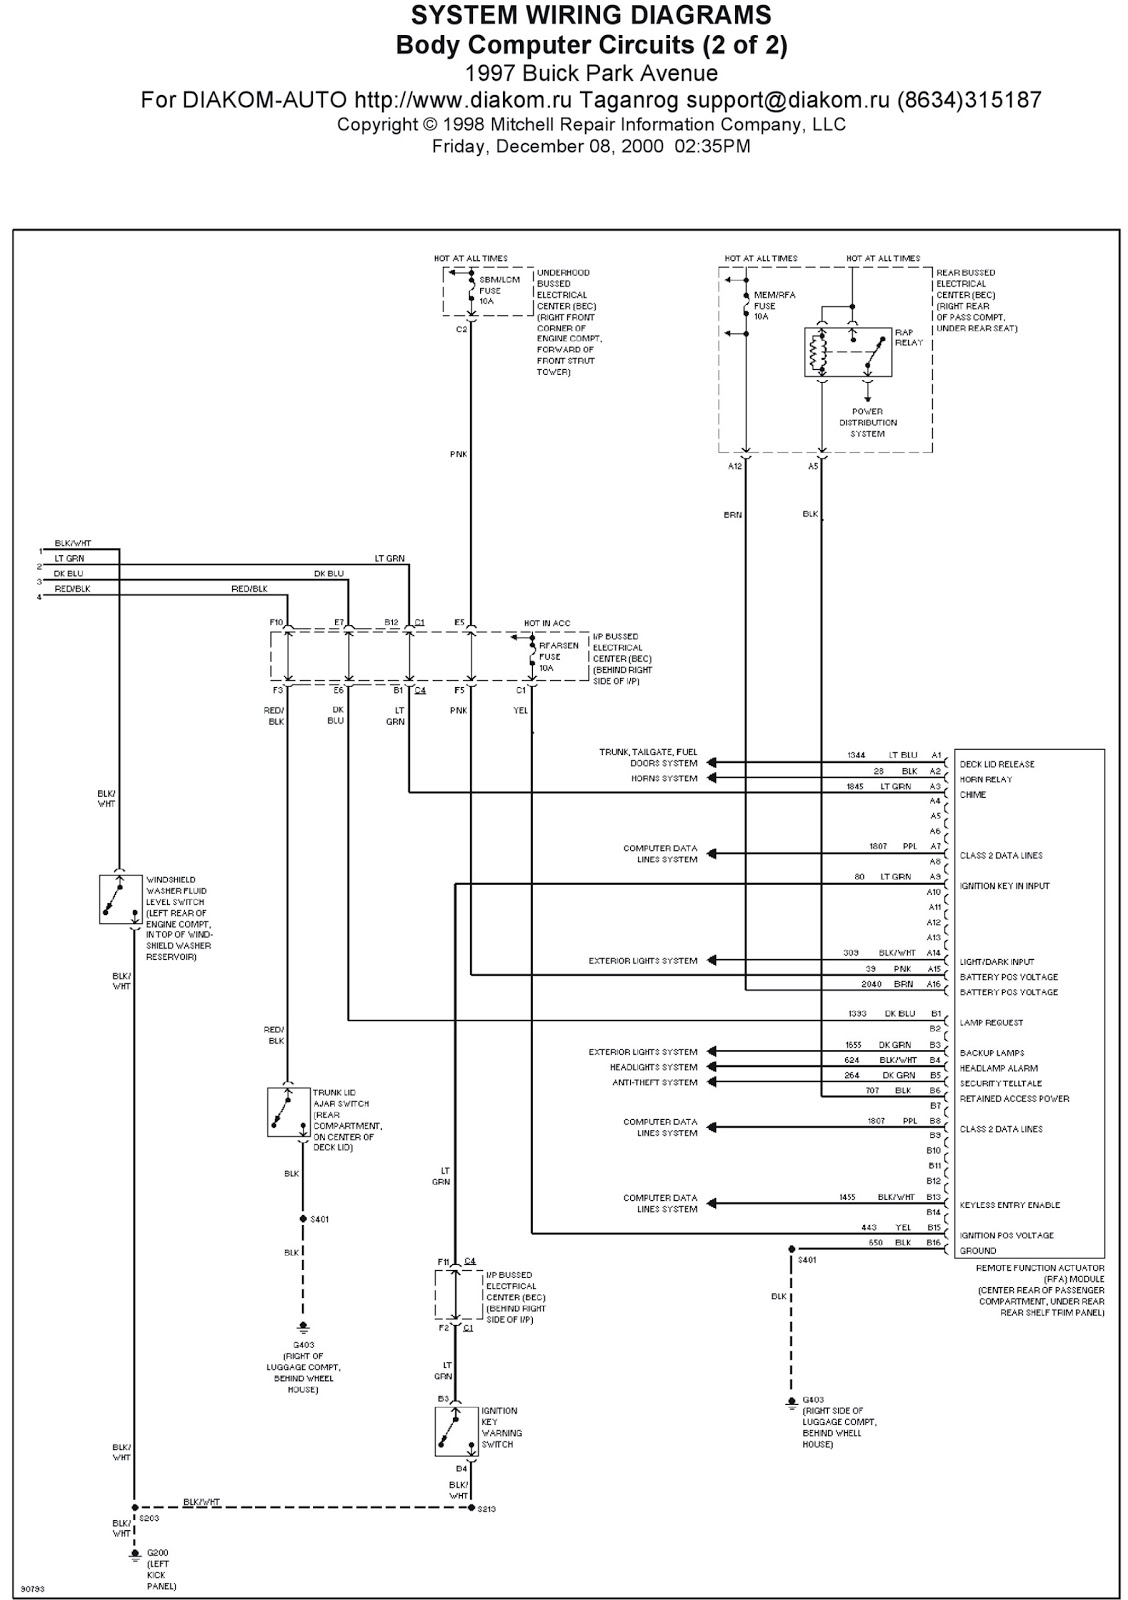 1997 Buick Park Avenue System Wiring Diagrams Body